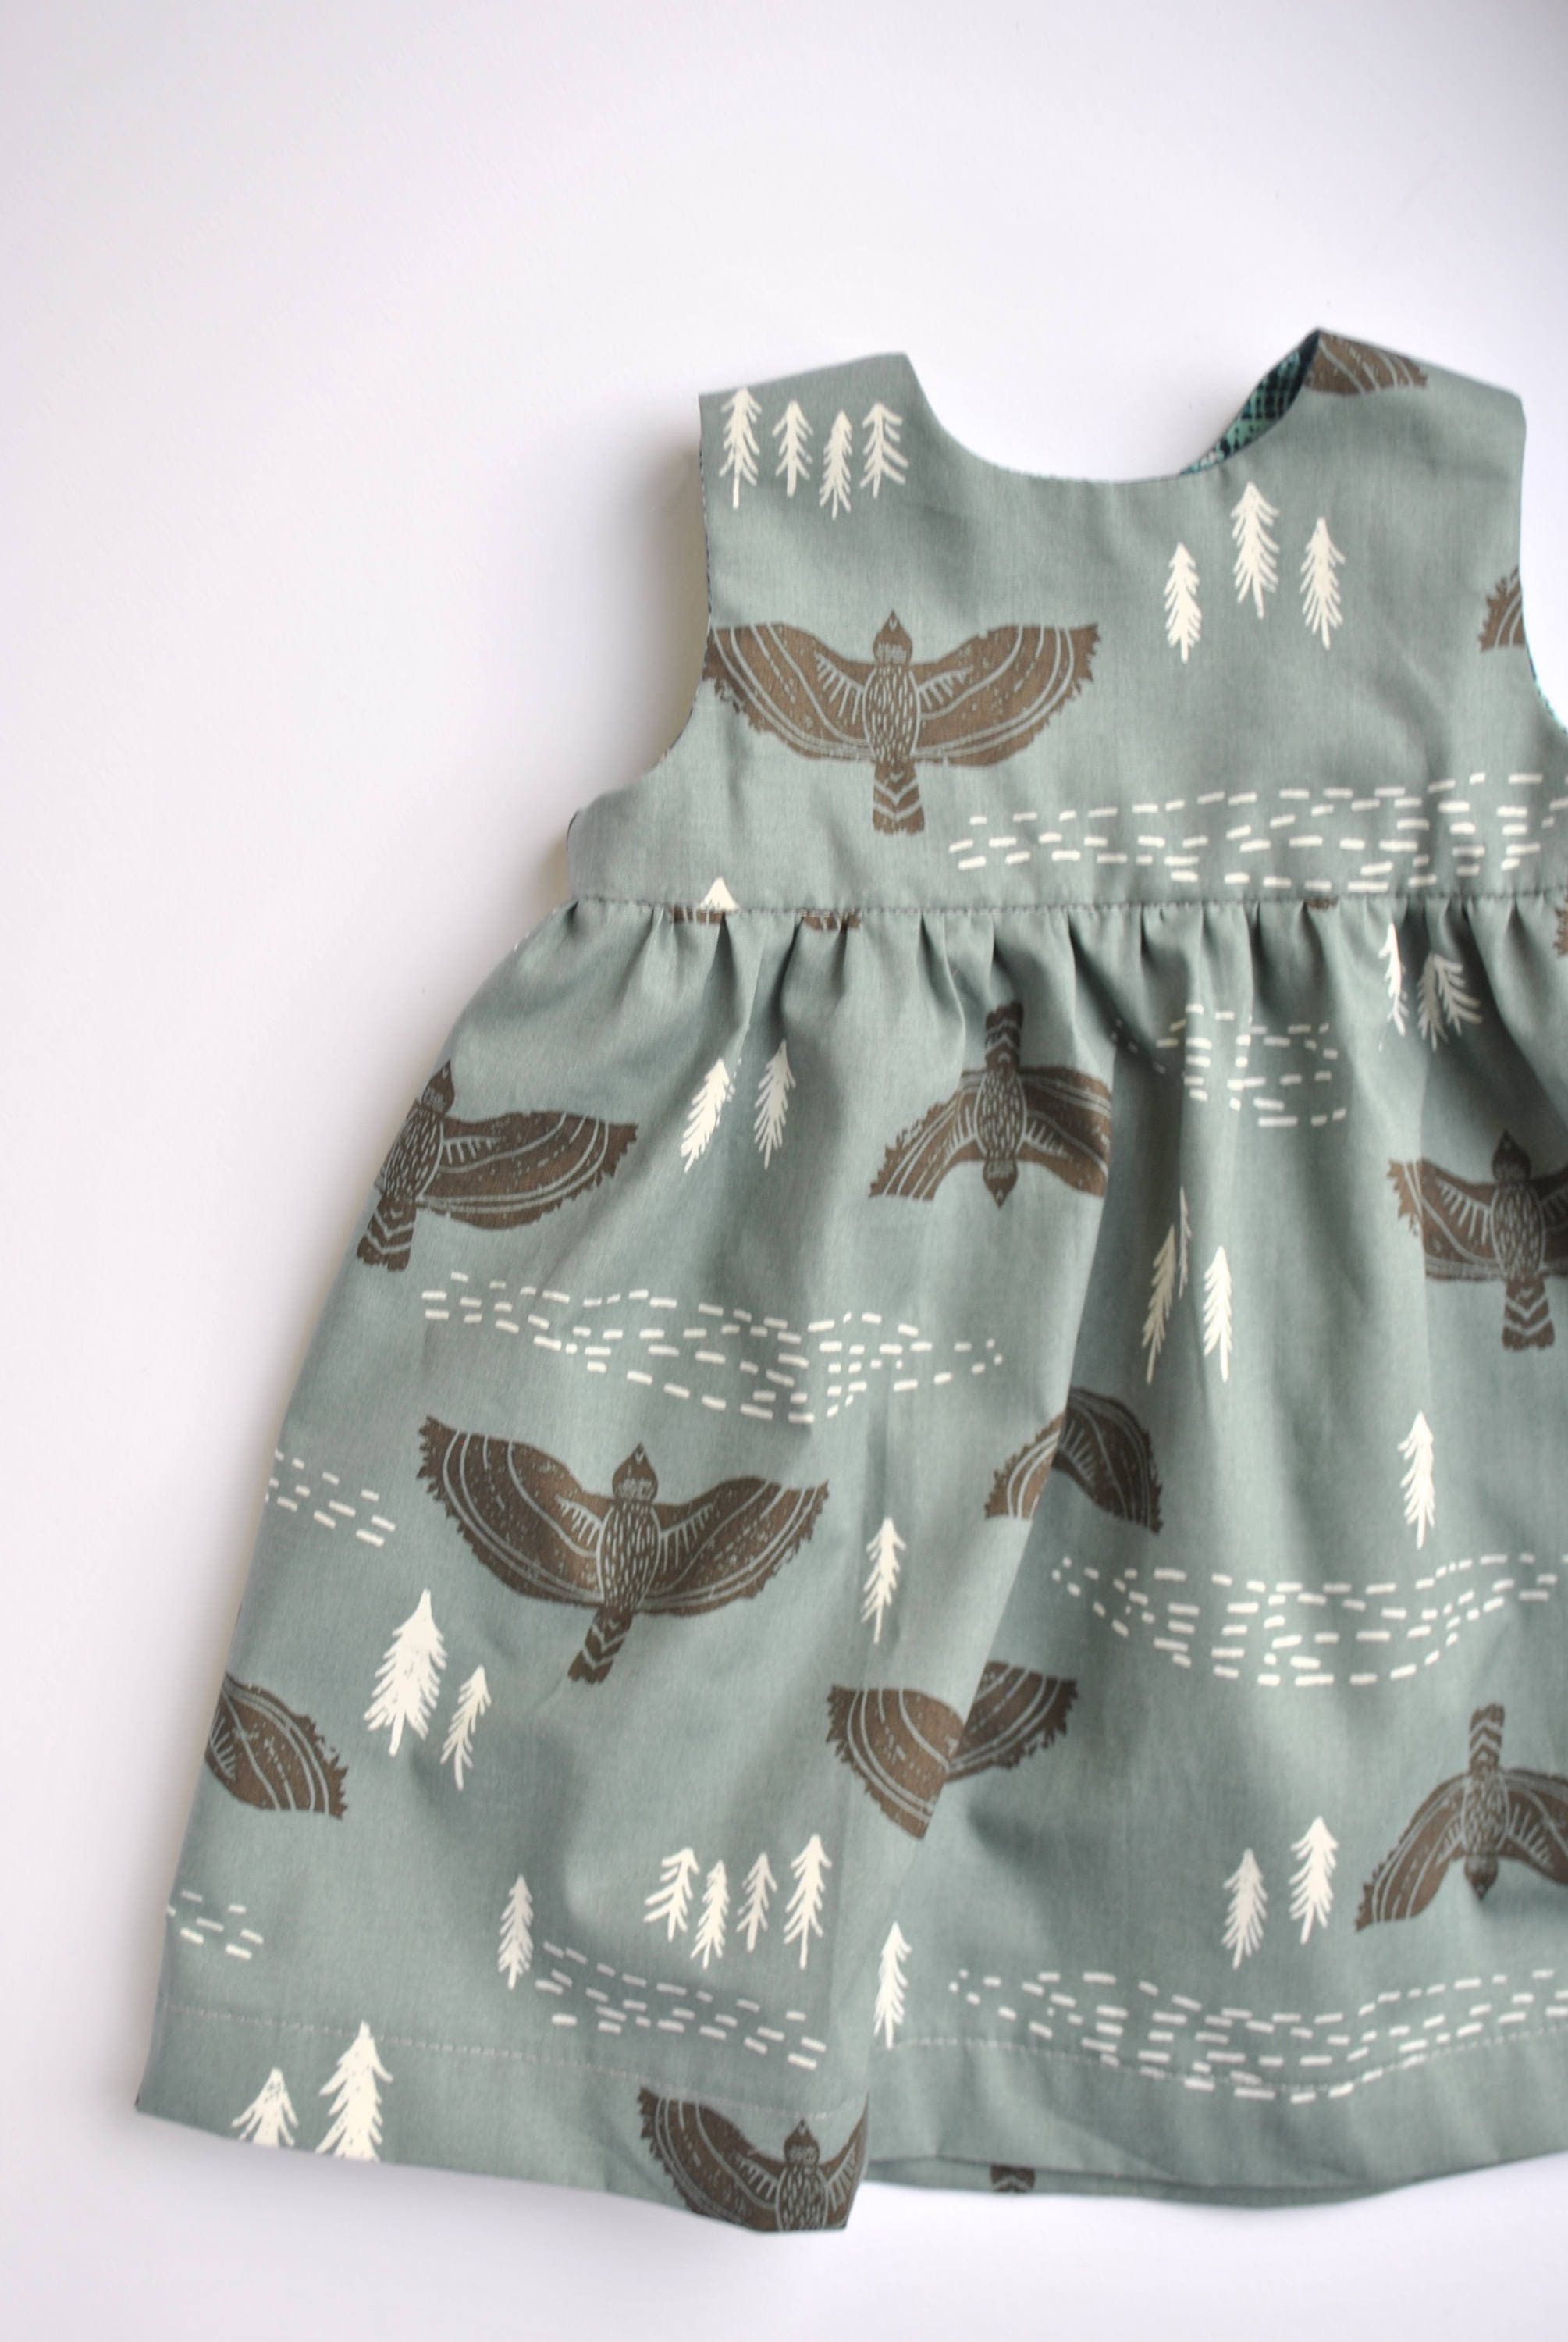 Baby Dress in Hawk Flight Print Tribal Bird Print Dress for Baby